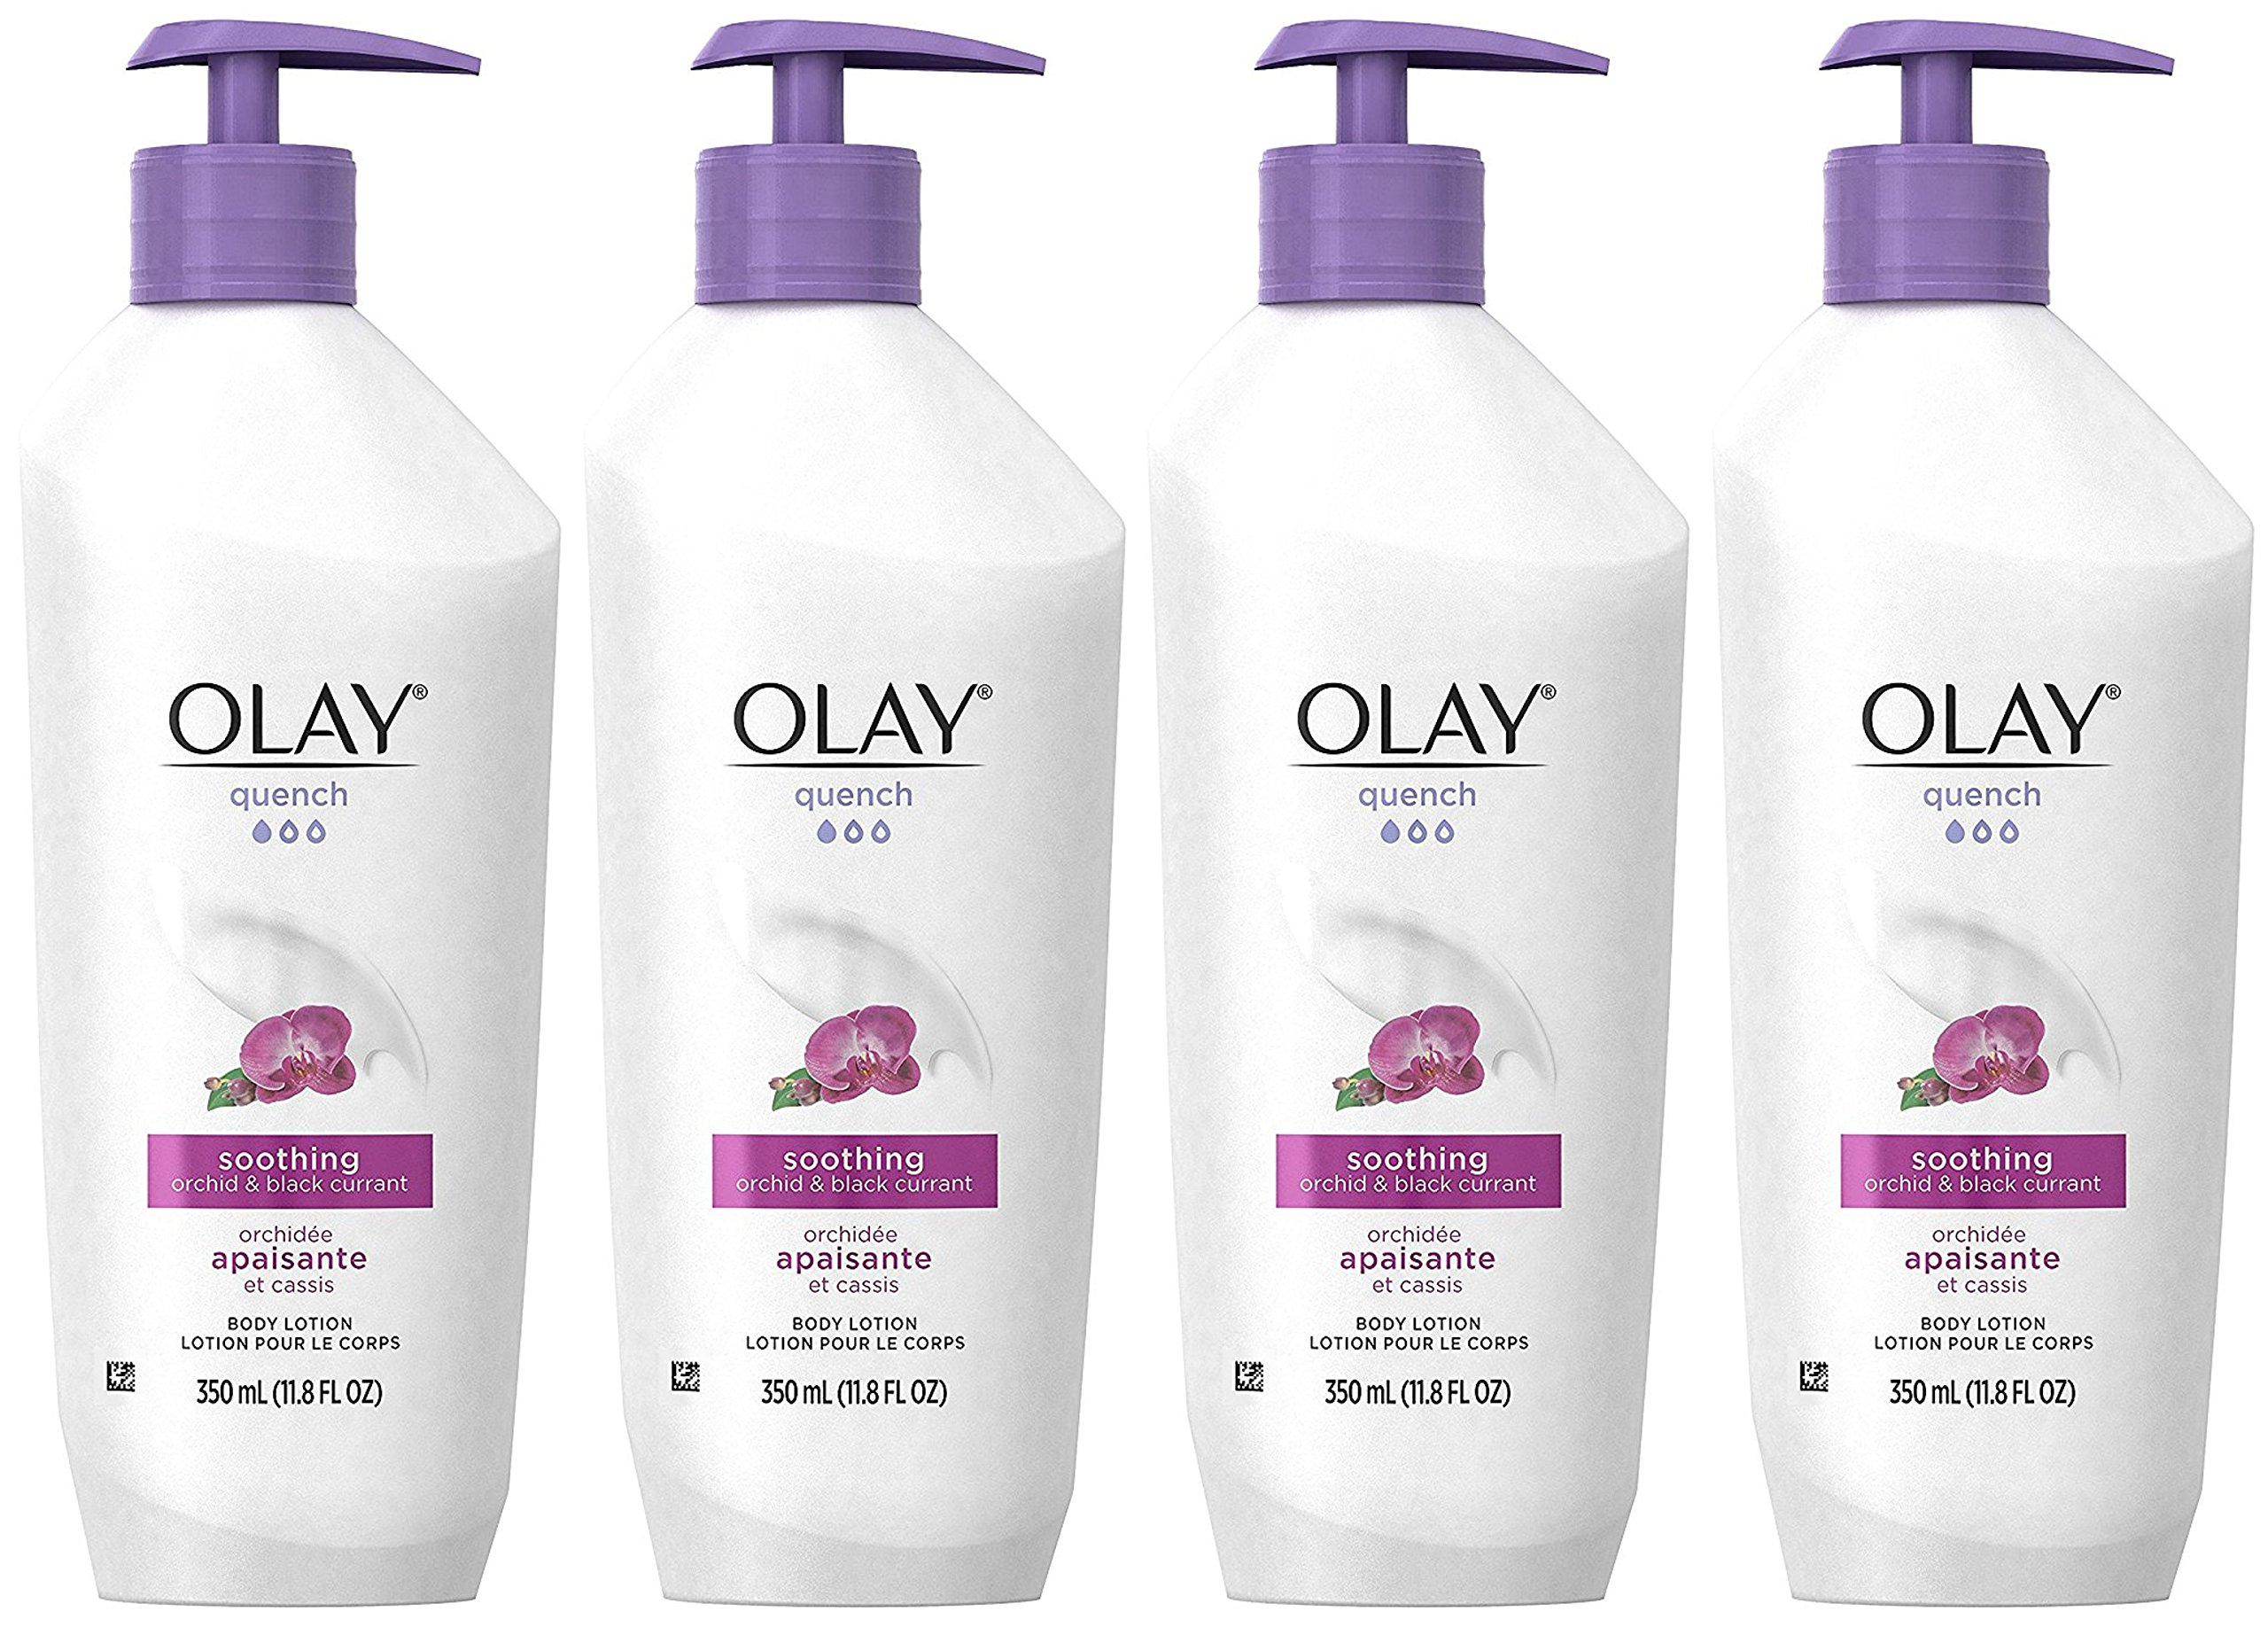 Olay Body Lotion - Quench - Soothing Orchid & Black Currant - Net Wt. 11.8 FL OZ (350 ML) Per Bottle - Pack of 4 Bottles by Olay